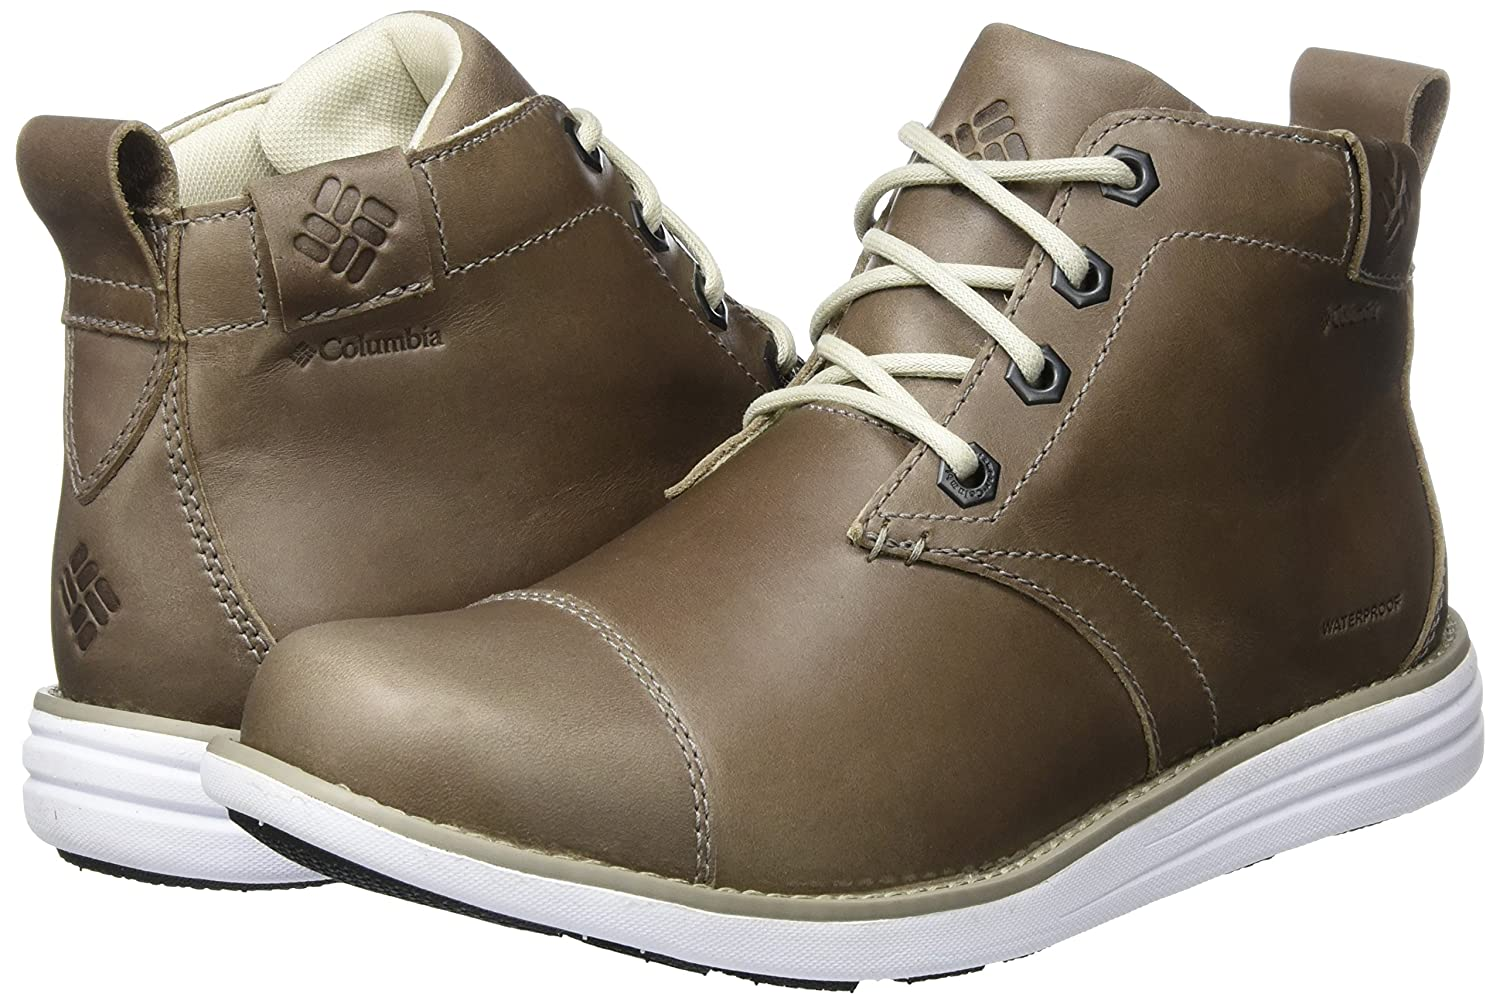 Columbia Irvington LTR WP, Bottes Chukka Homme, Gris (Kettle/White), 47 EU